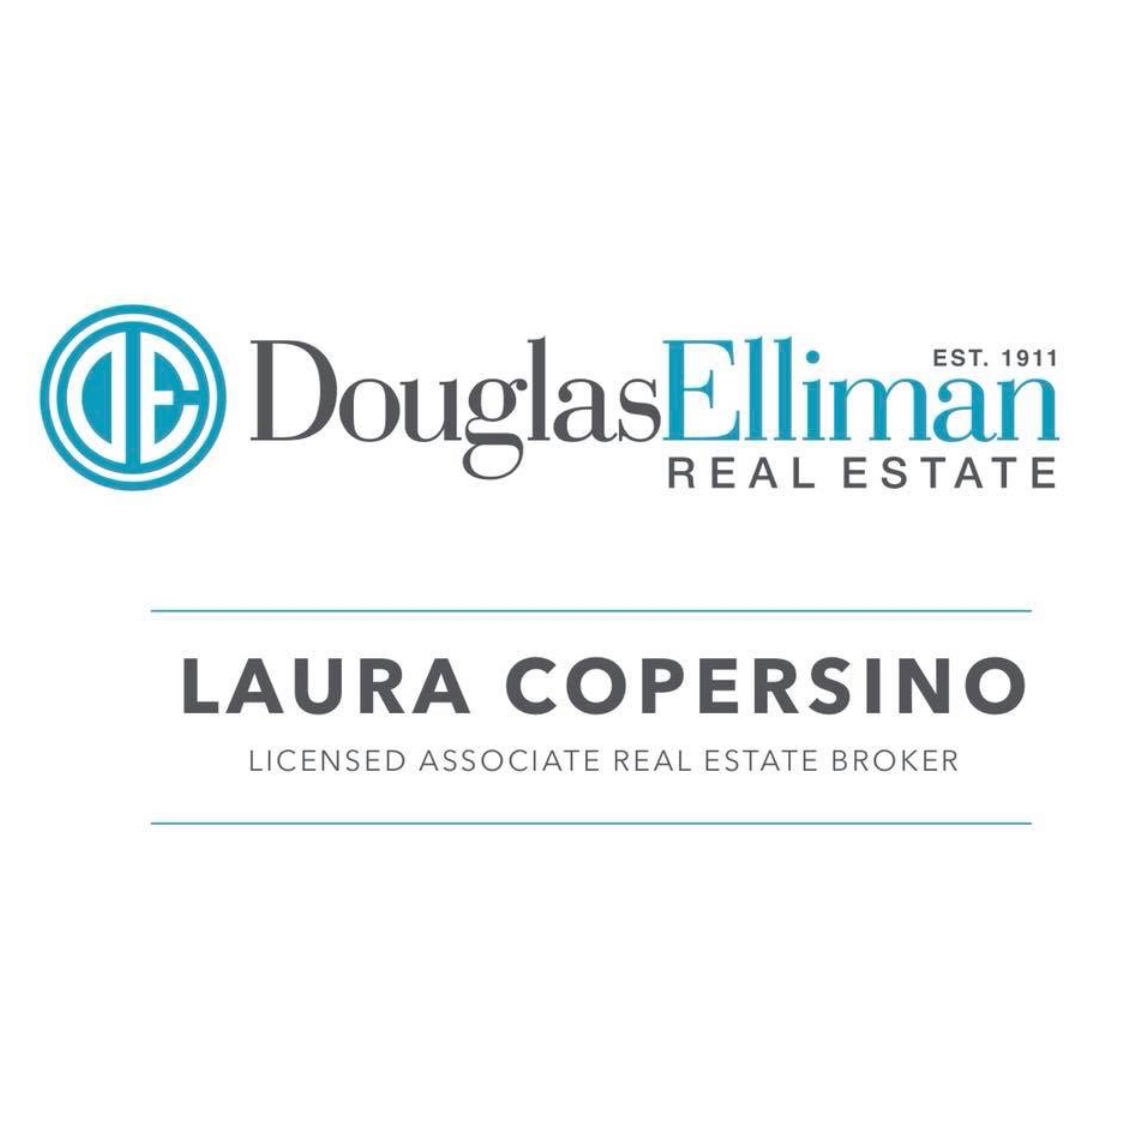 Laura Copersino, Licensed Associate Broker at Douglas Elliman Real Estate